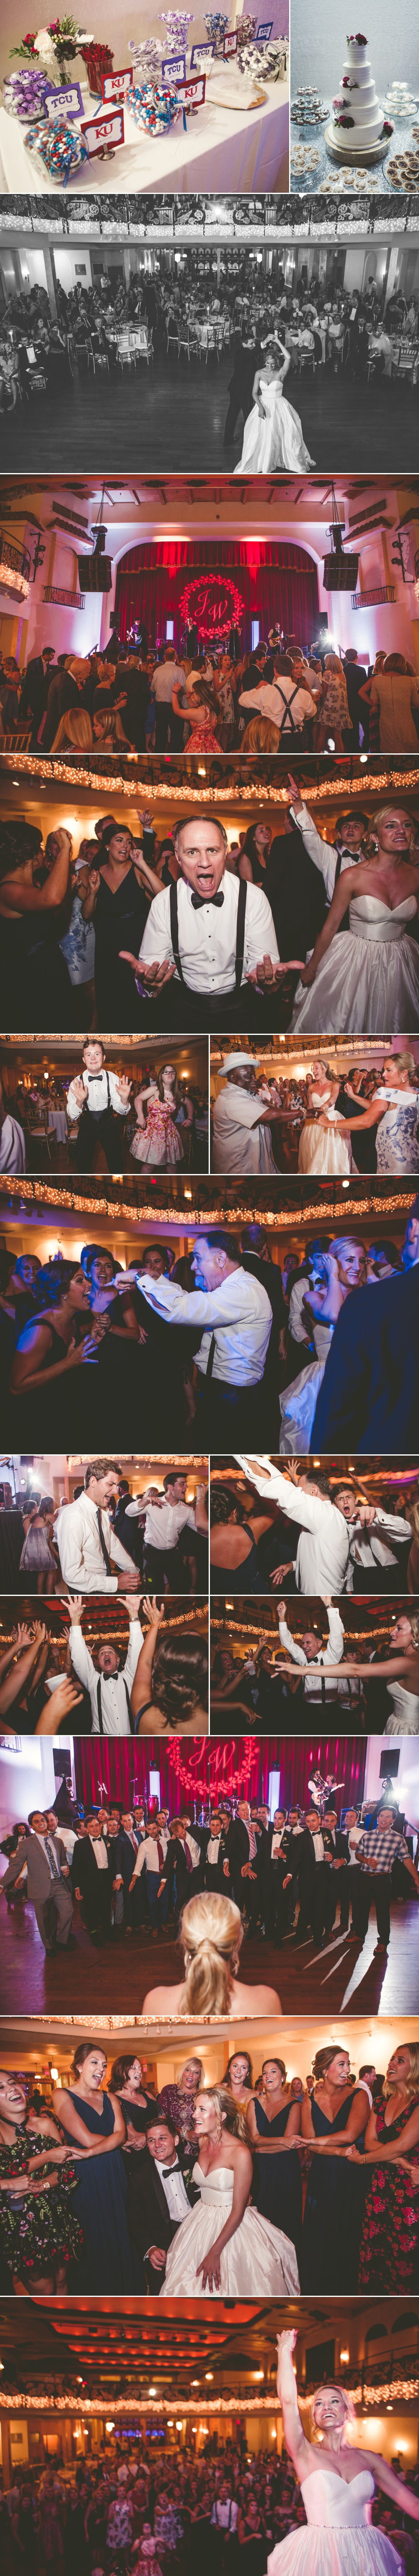 jason_domingues_photography_best_kansas_city_wedding_photographer_kc_weddings_madrid_theater_our_lady_or_perpetual_help_0006.JPG